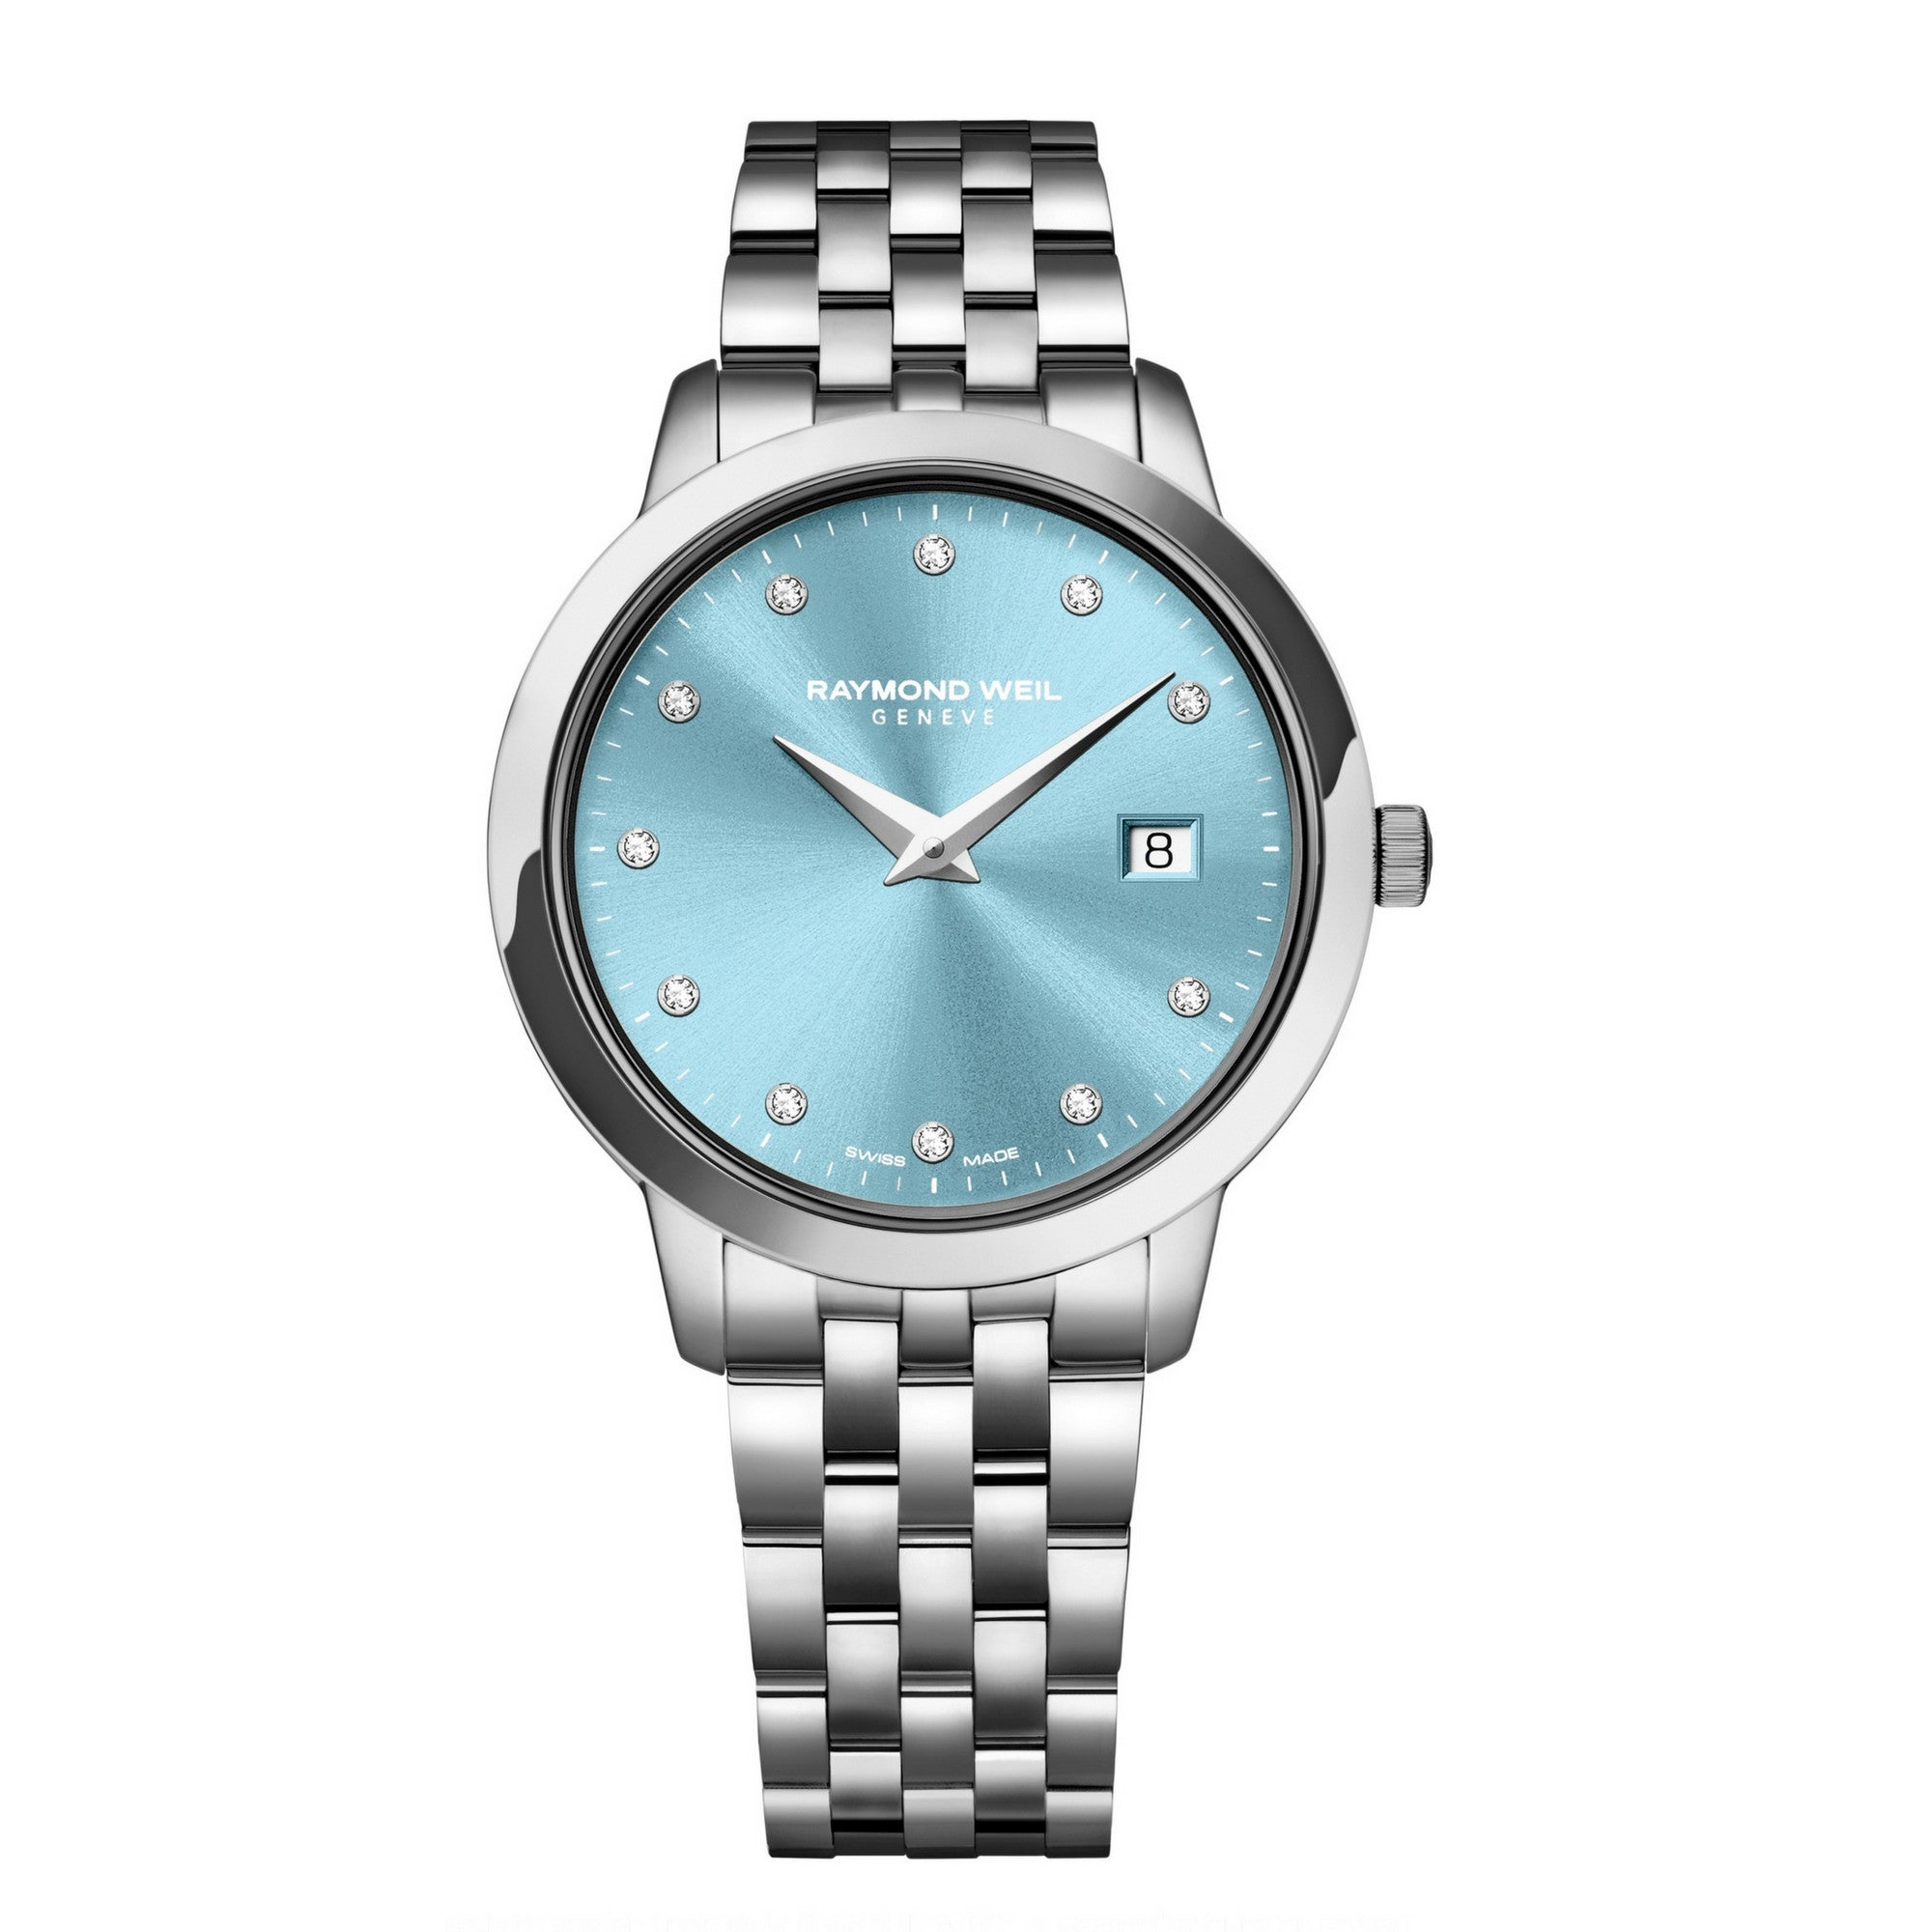 Raymond Weil Toccata Little Switzerland Exclusive watch with blue dial